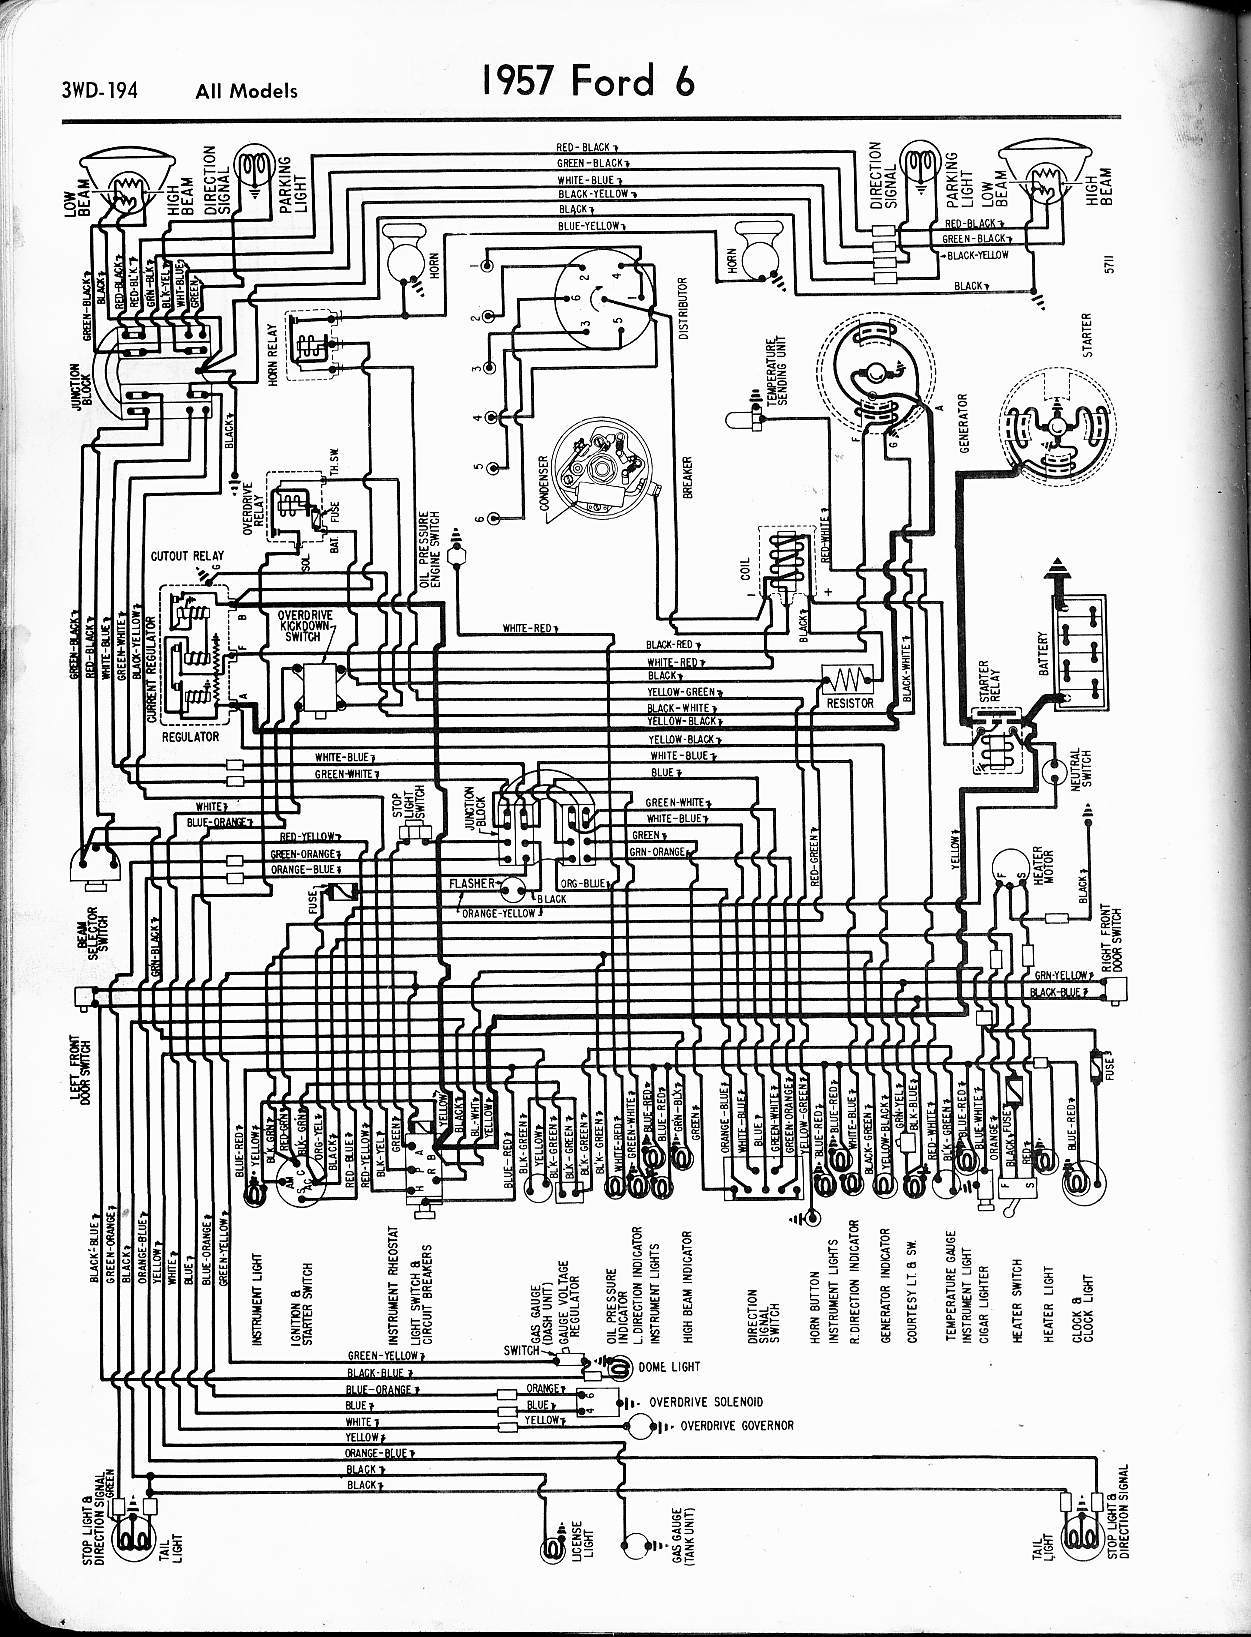 80 2010_07_23_013626_1957_ford_wiring_451fe1d3aafe571893763e4bcbb92521b2870e9d 1957 ford truck wiring diagram ford truck enthusiasts forums ford wiring schematics at n-0.co